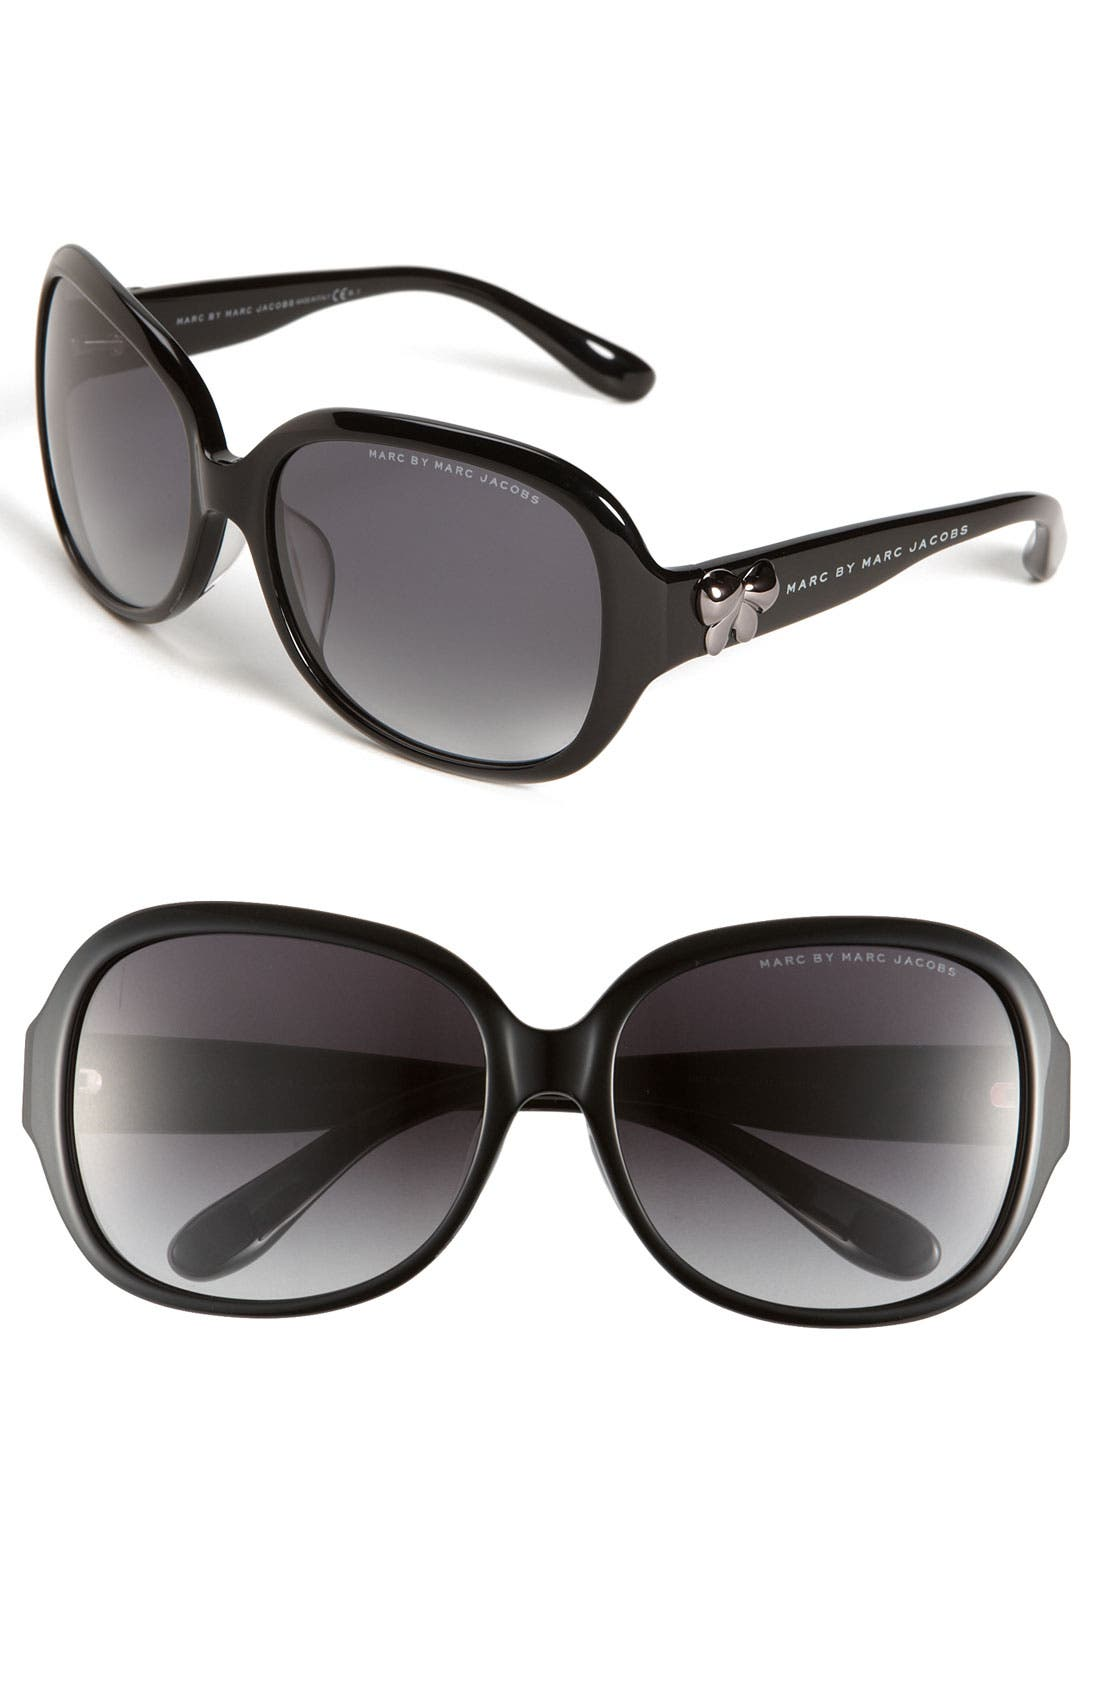 Main Image - MARC BY MARC JACOBS 'International Collection' 58mm Sunglasses